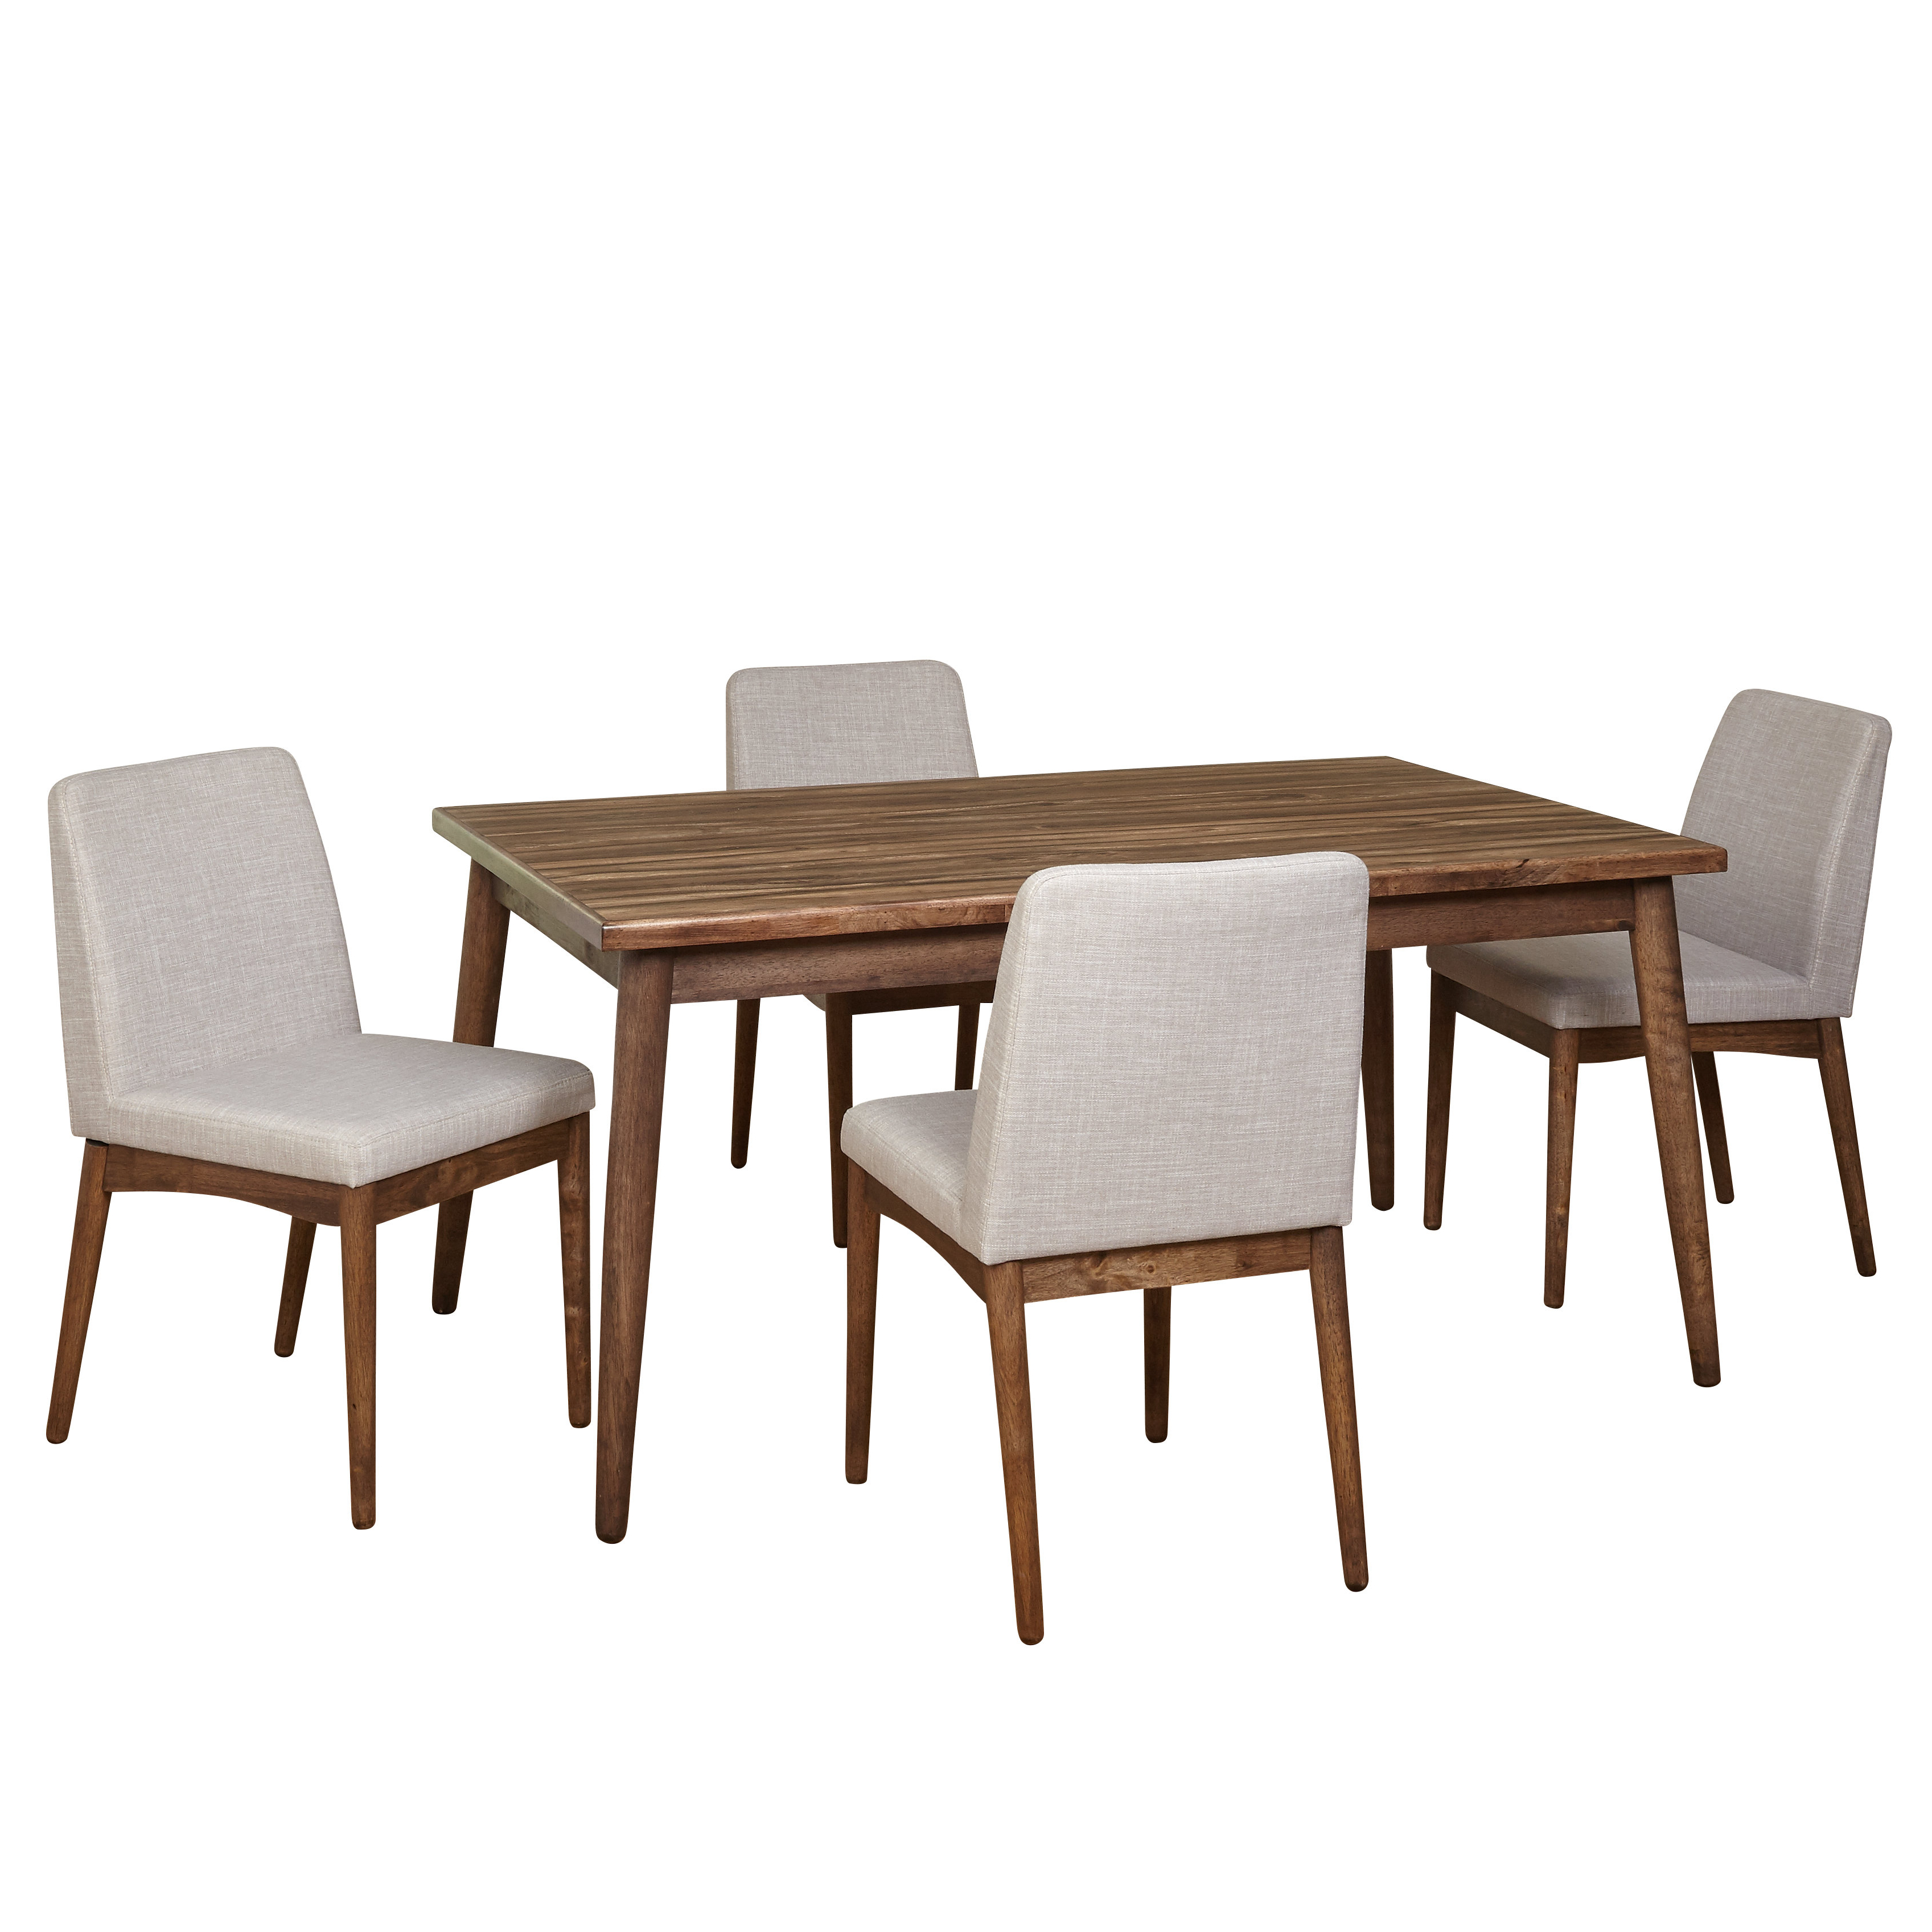 Preferred Liles 5 Piece Breakfast Nook Dining Sets Regarding Lydia 5 Piece Dining Set & Reviews (View 23 of 25)